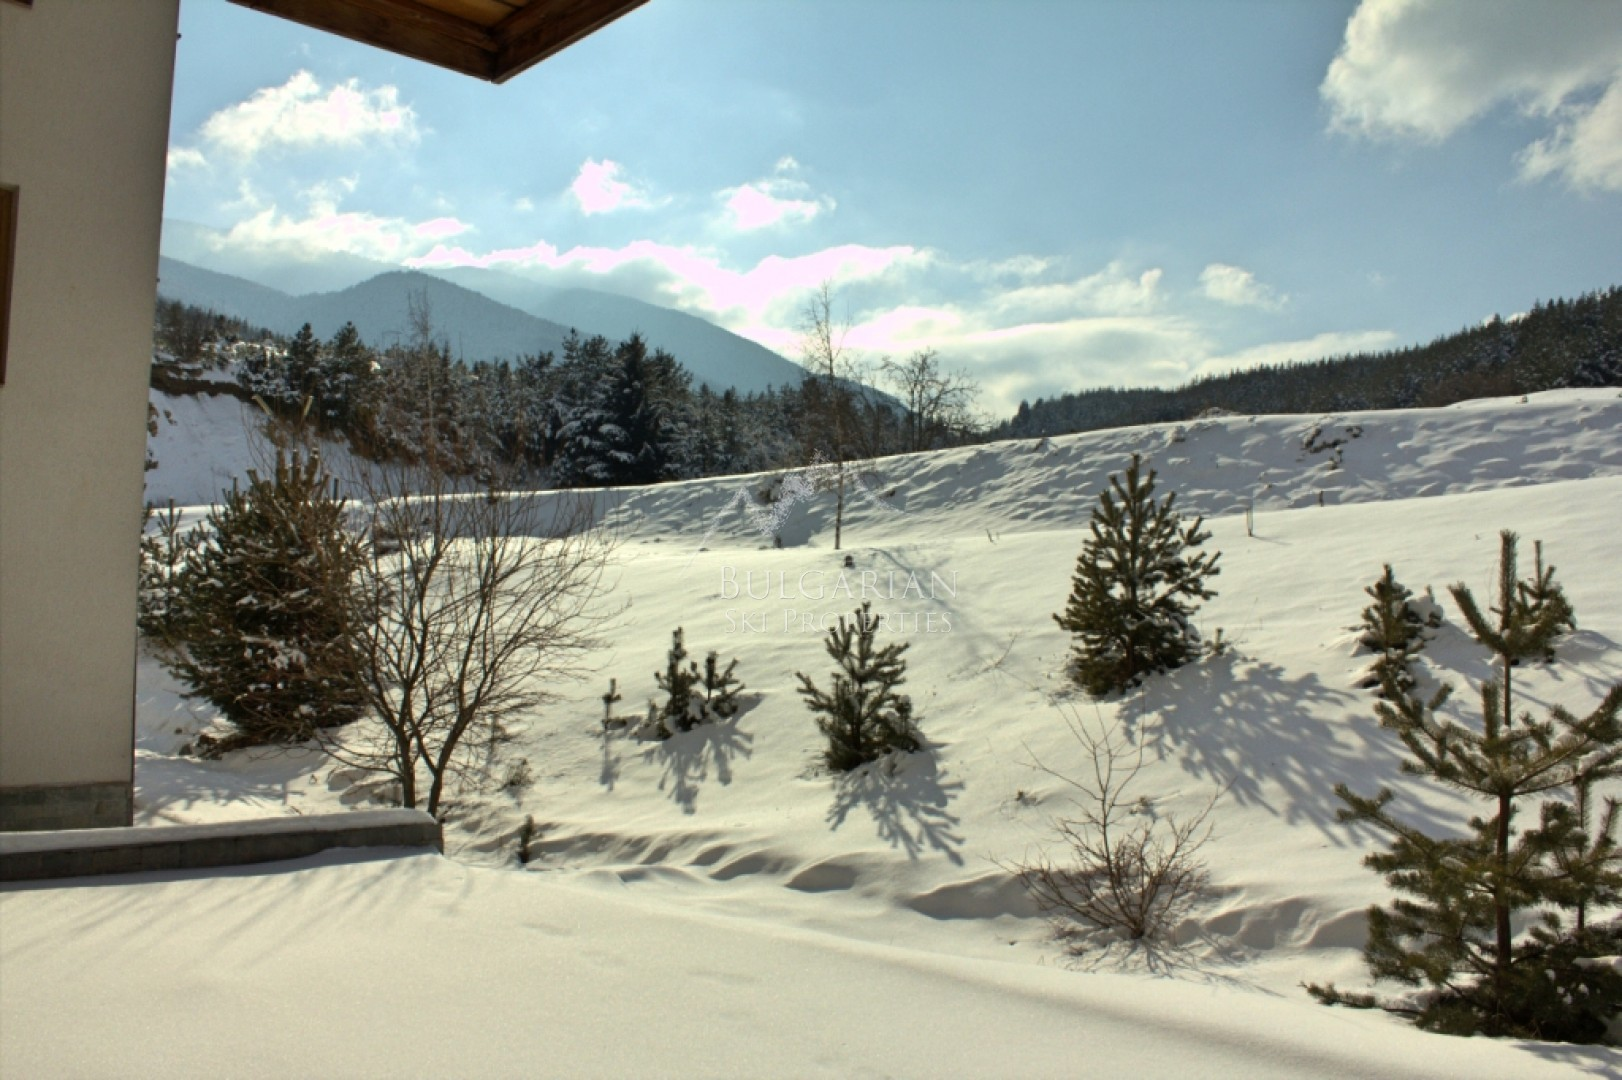 Bansko, St. John Hill: furnished one bedroom apartment with fireplace for sale